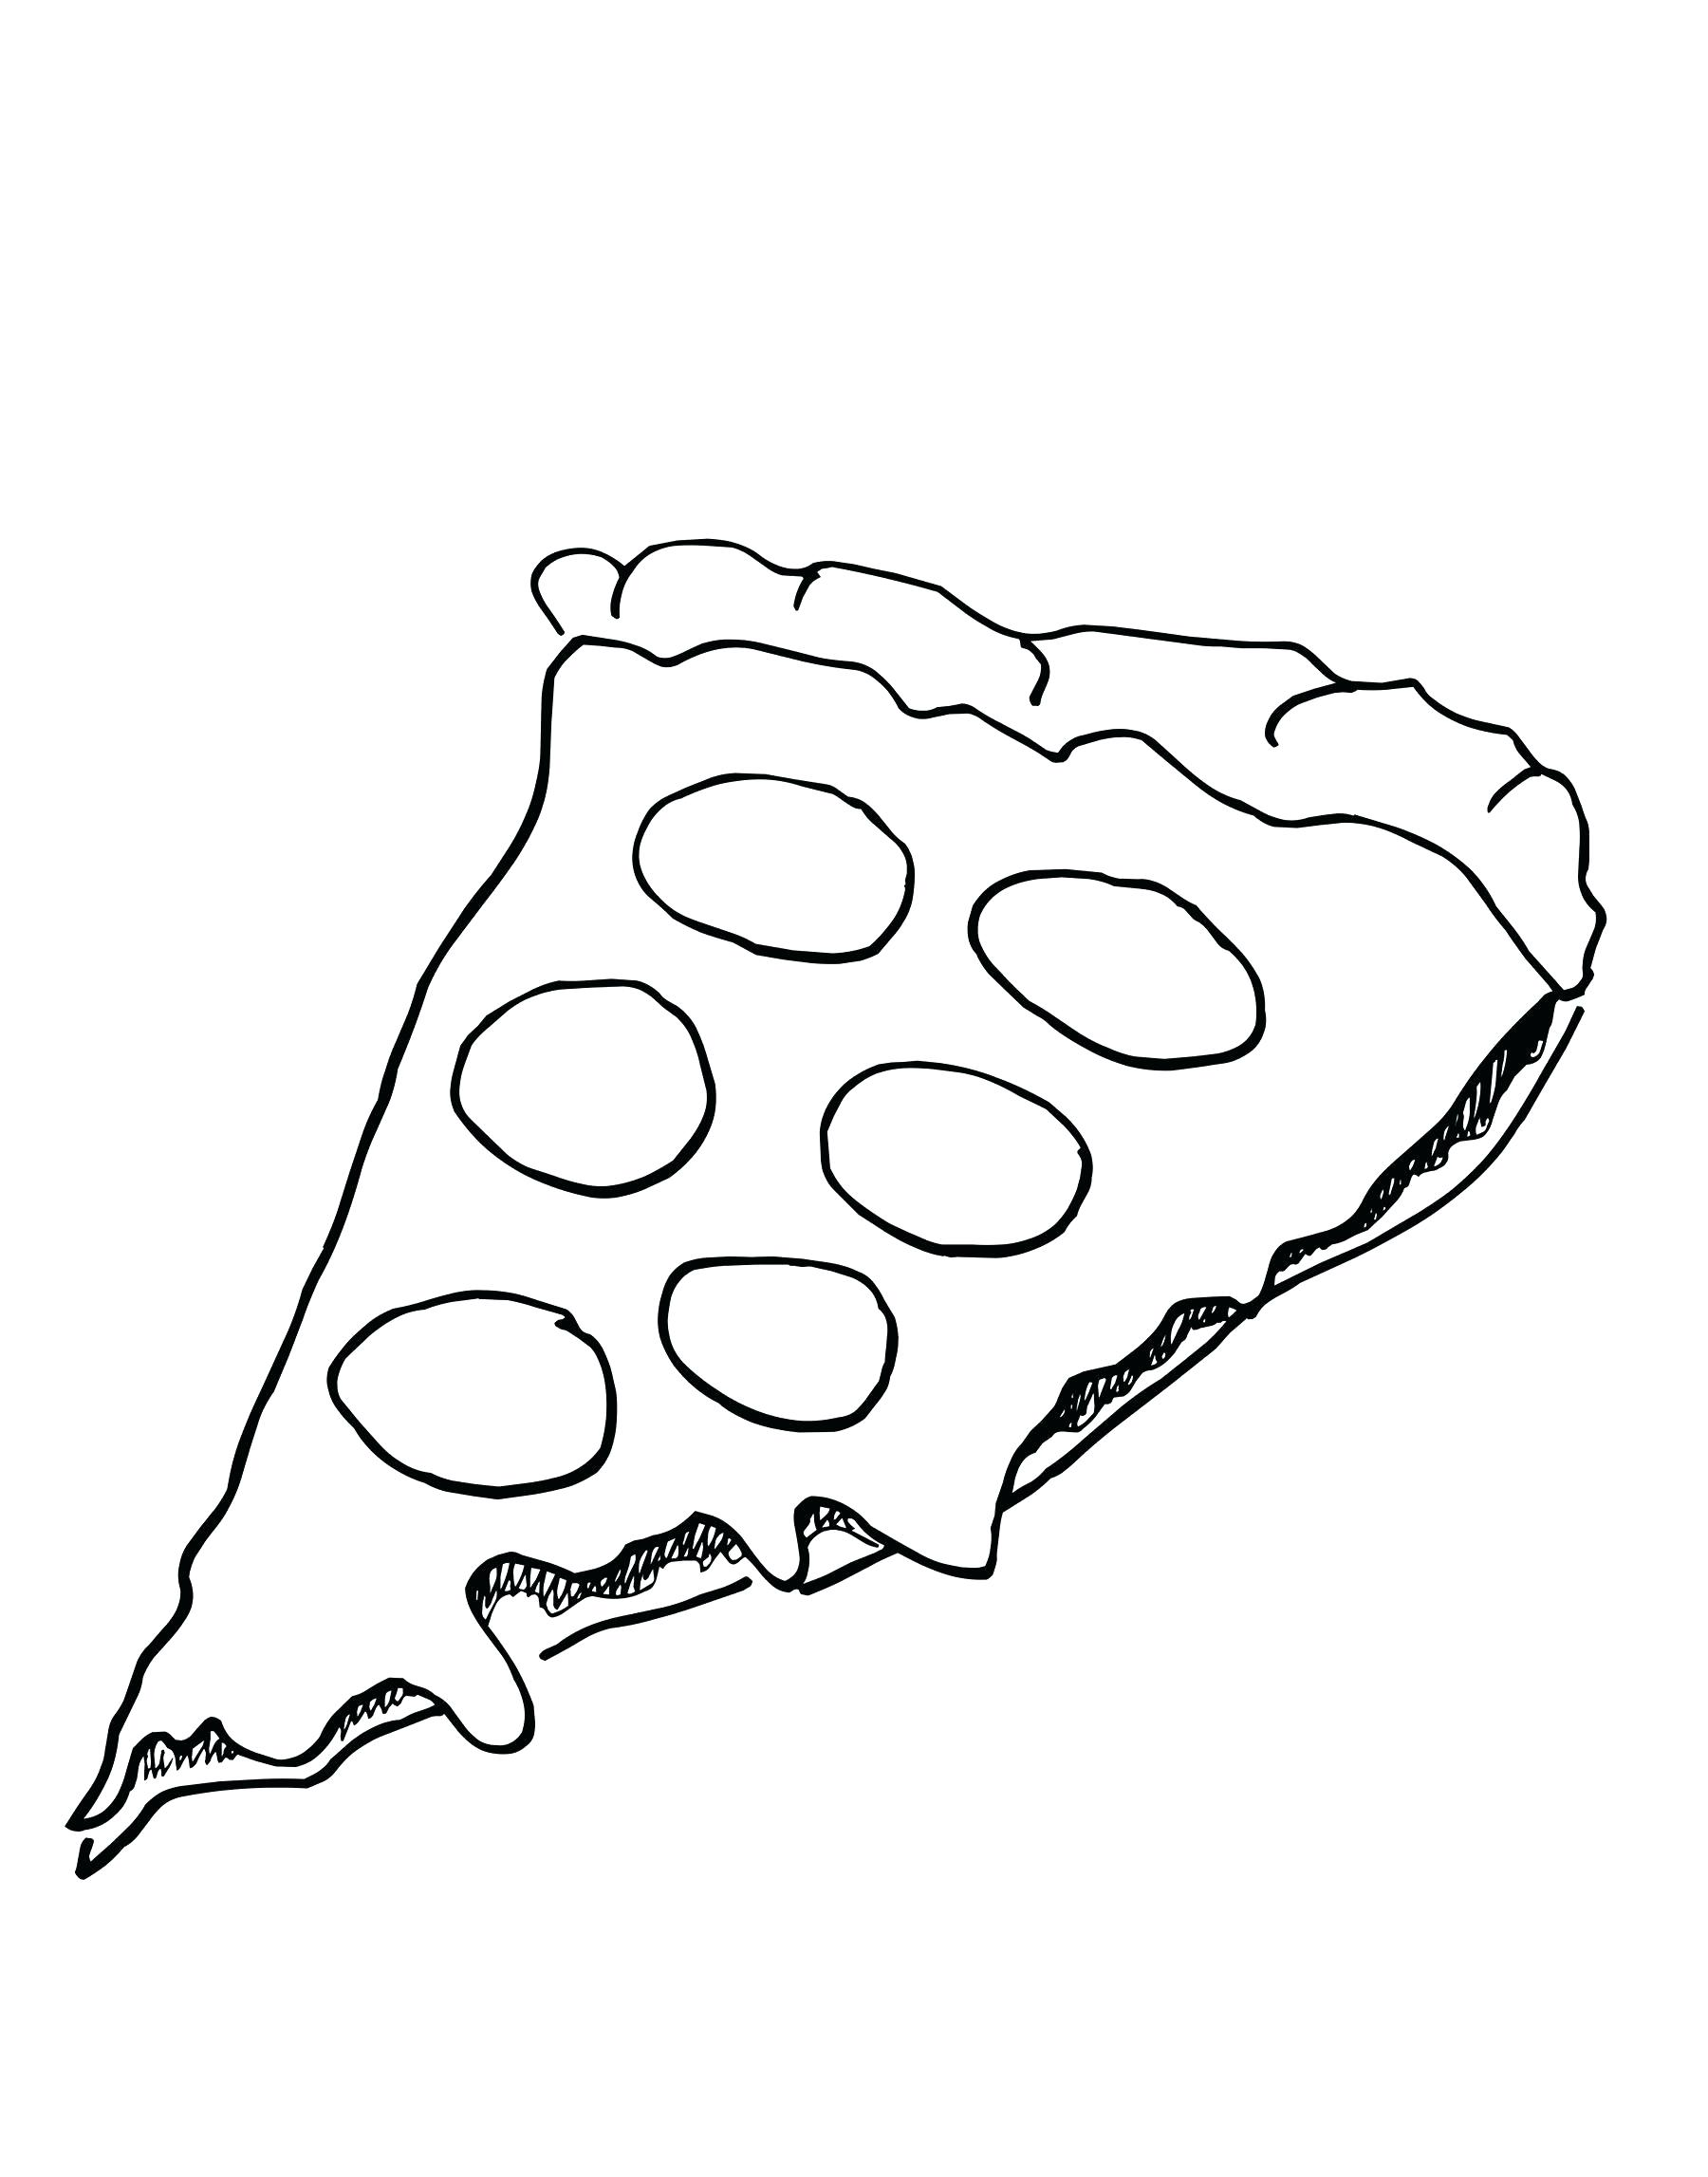 Cheese Pizza Drawing At Getdrawings